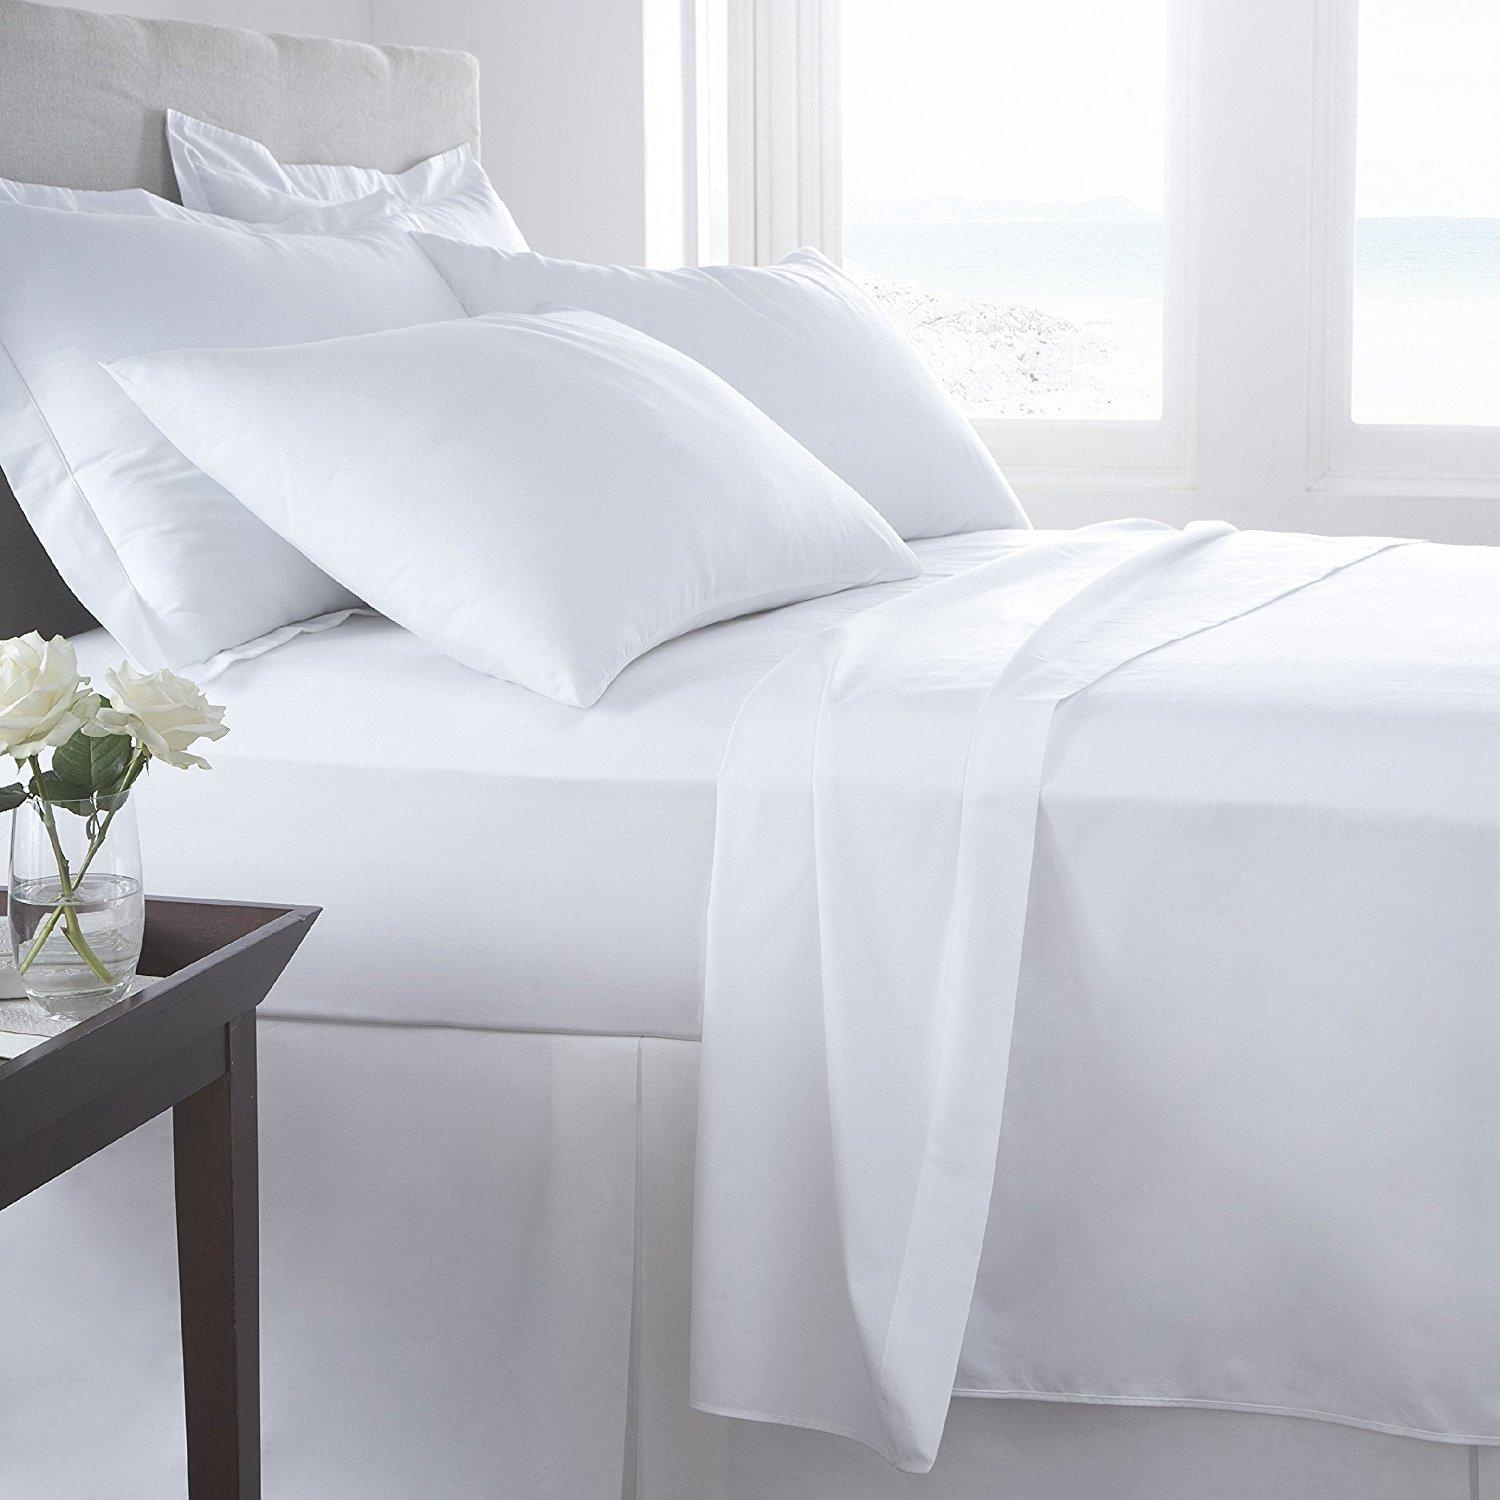 Wrinkle-free bedding may look nice, but don't sacrifice your health for the wrinkle-free look.